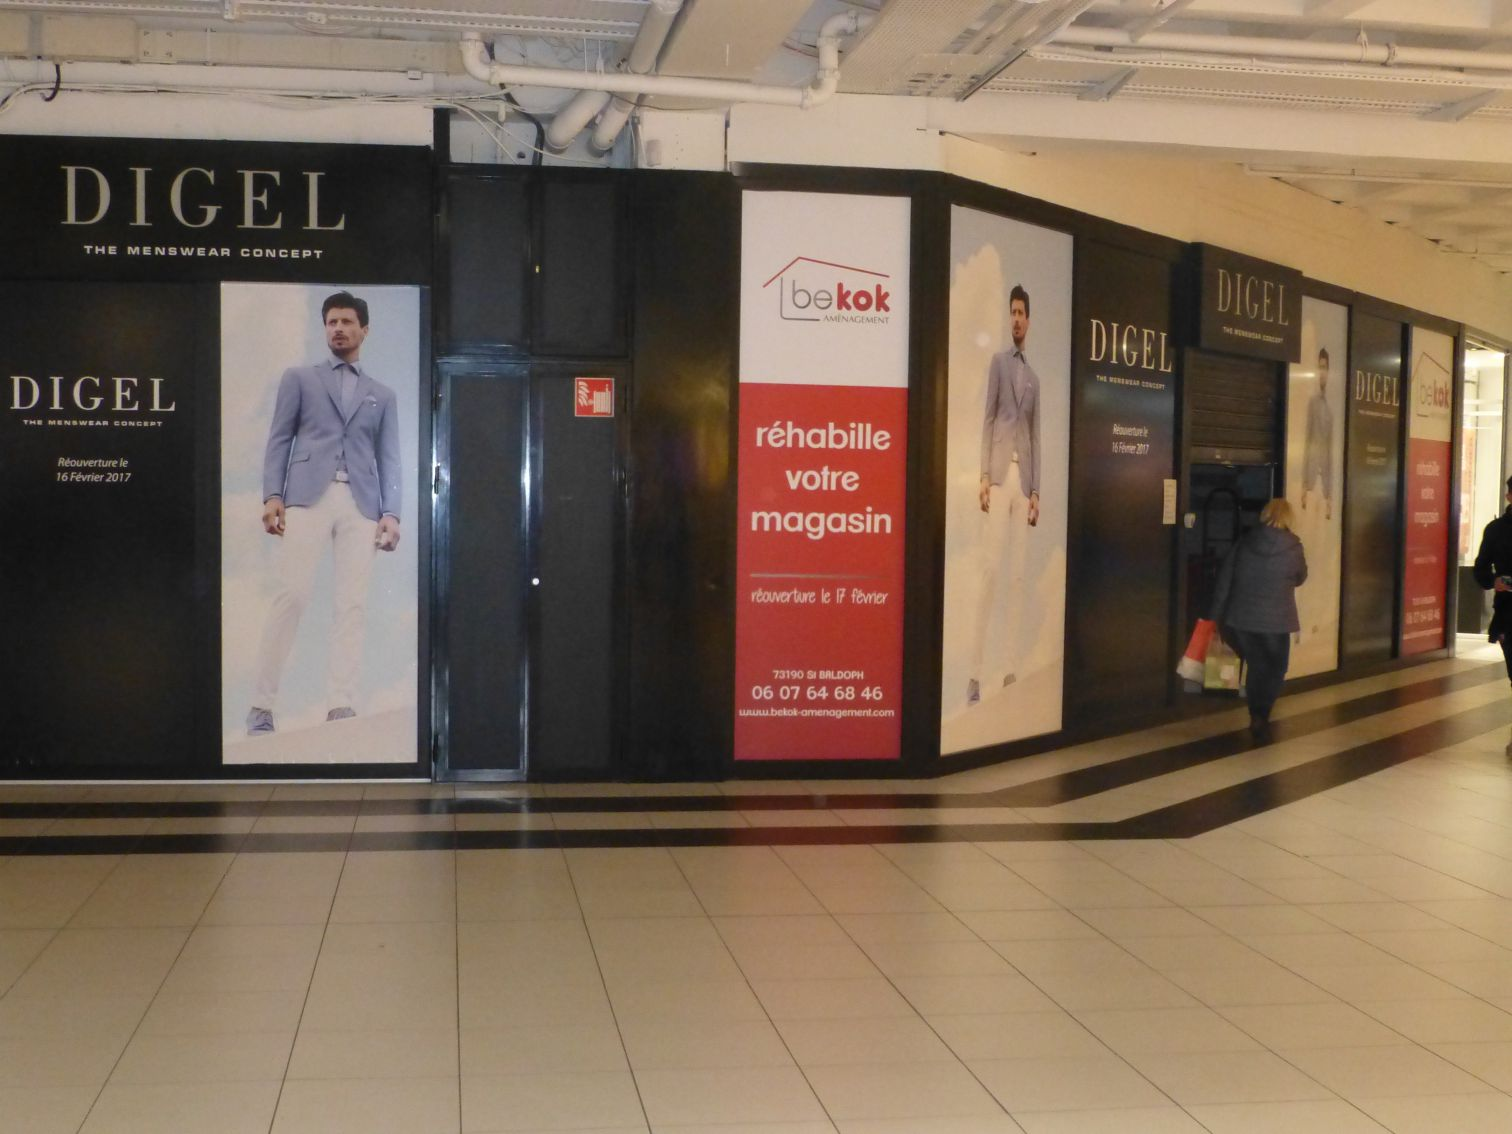 Magasin Bricolage Chambery Agencement Et Rénovation Boutique Digel Chambéry Chamnord